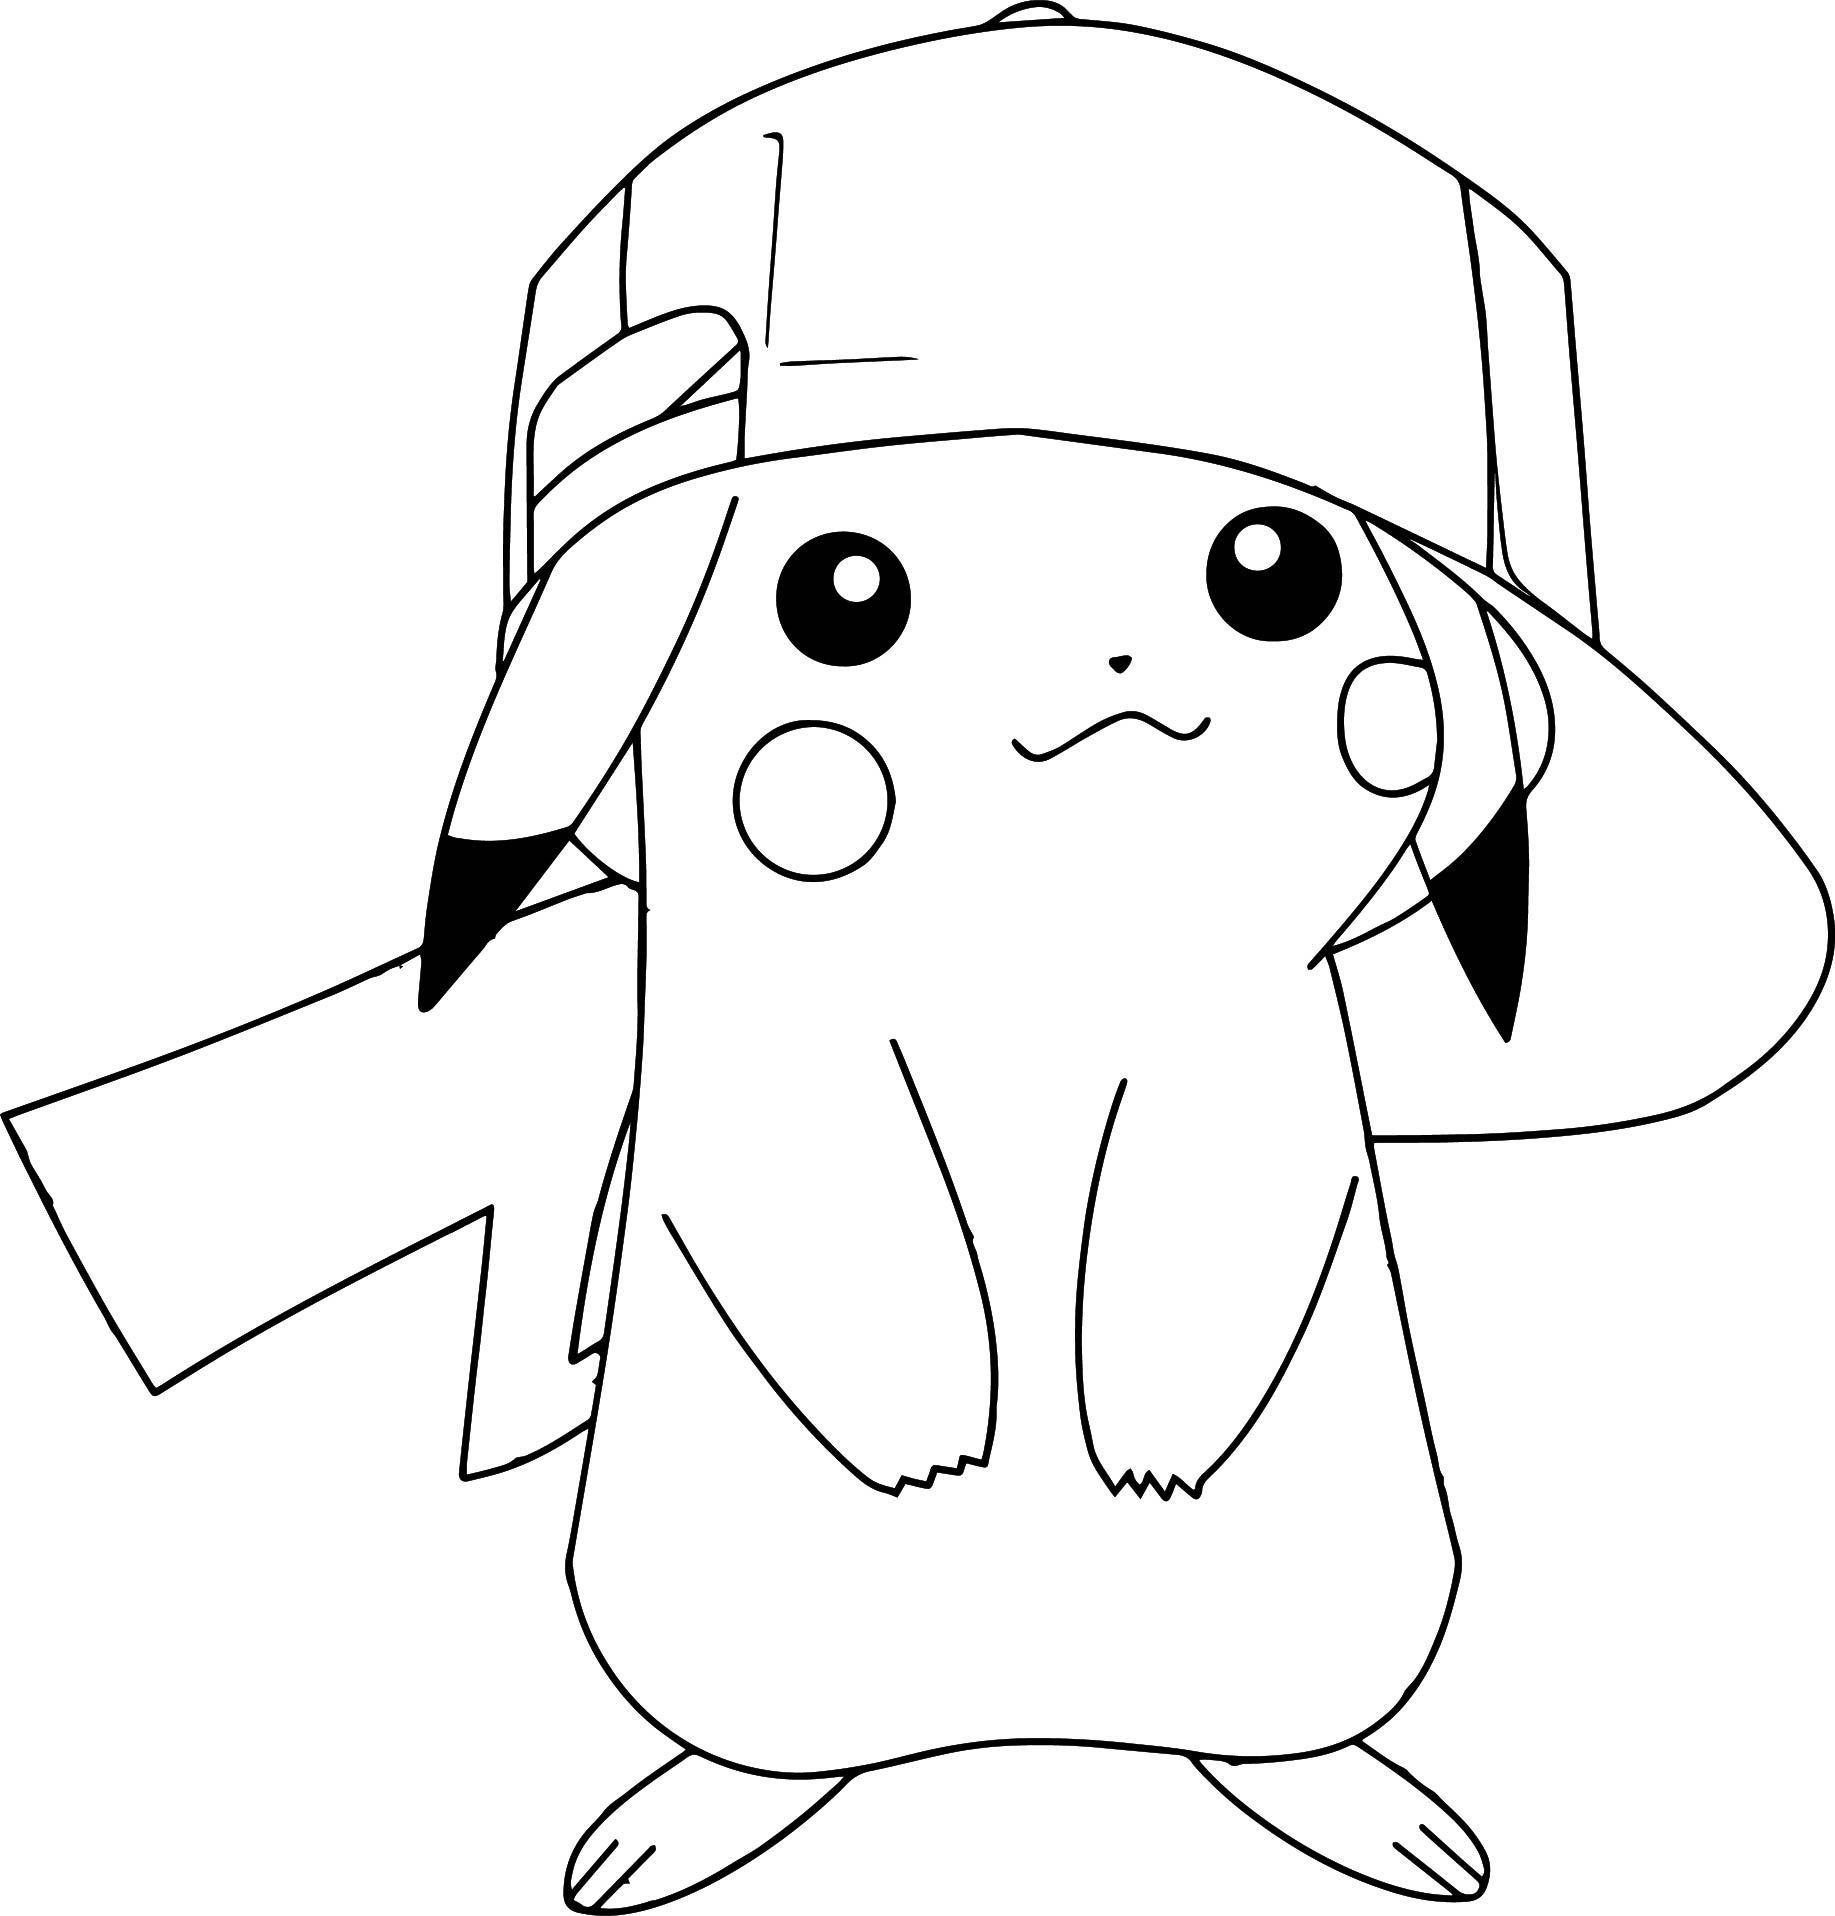 Pikachu And Squirtle Coloring Pages Pikachu And Squirtle Coloring